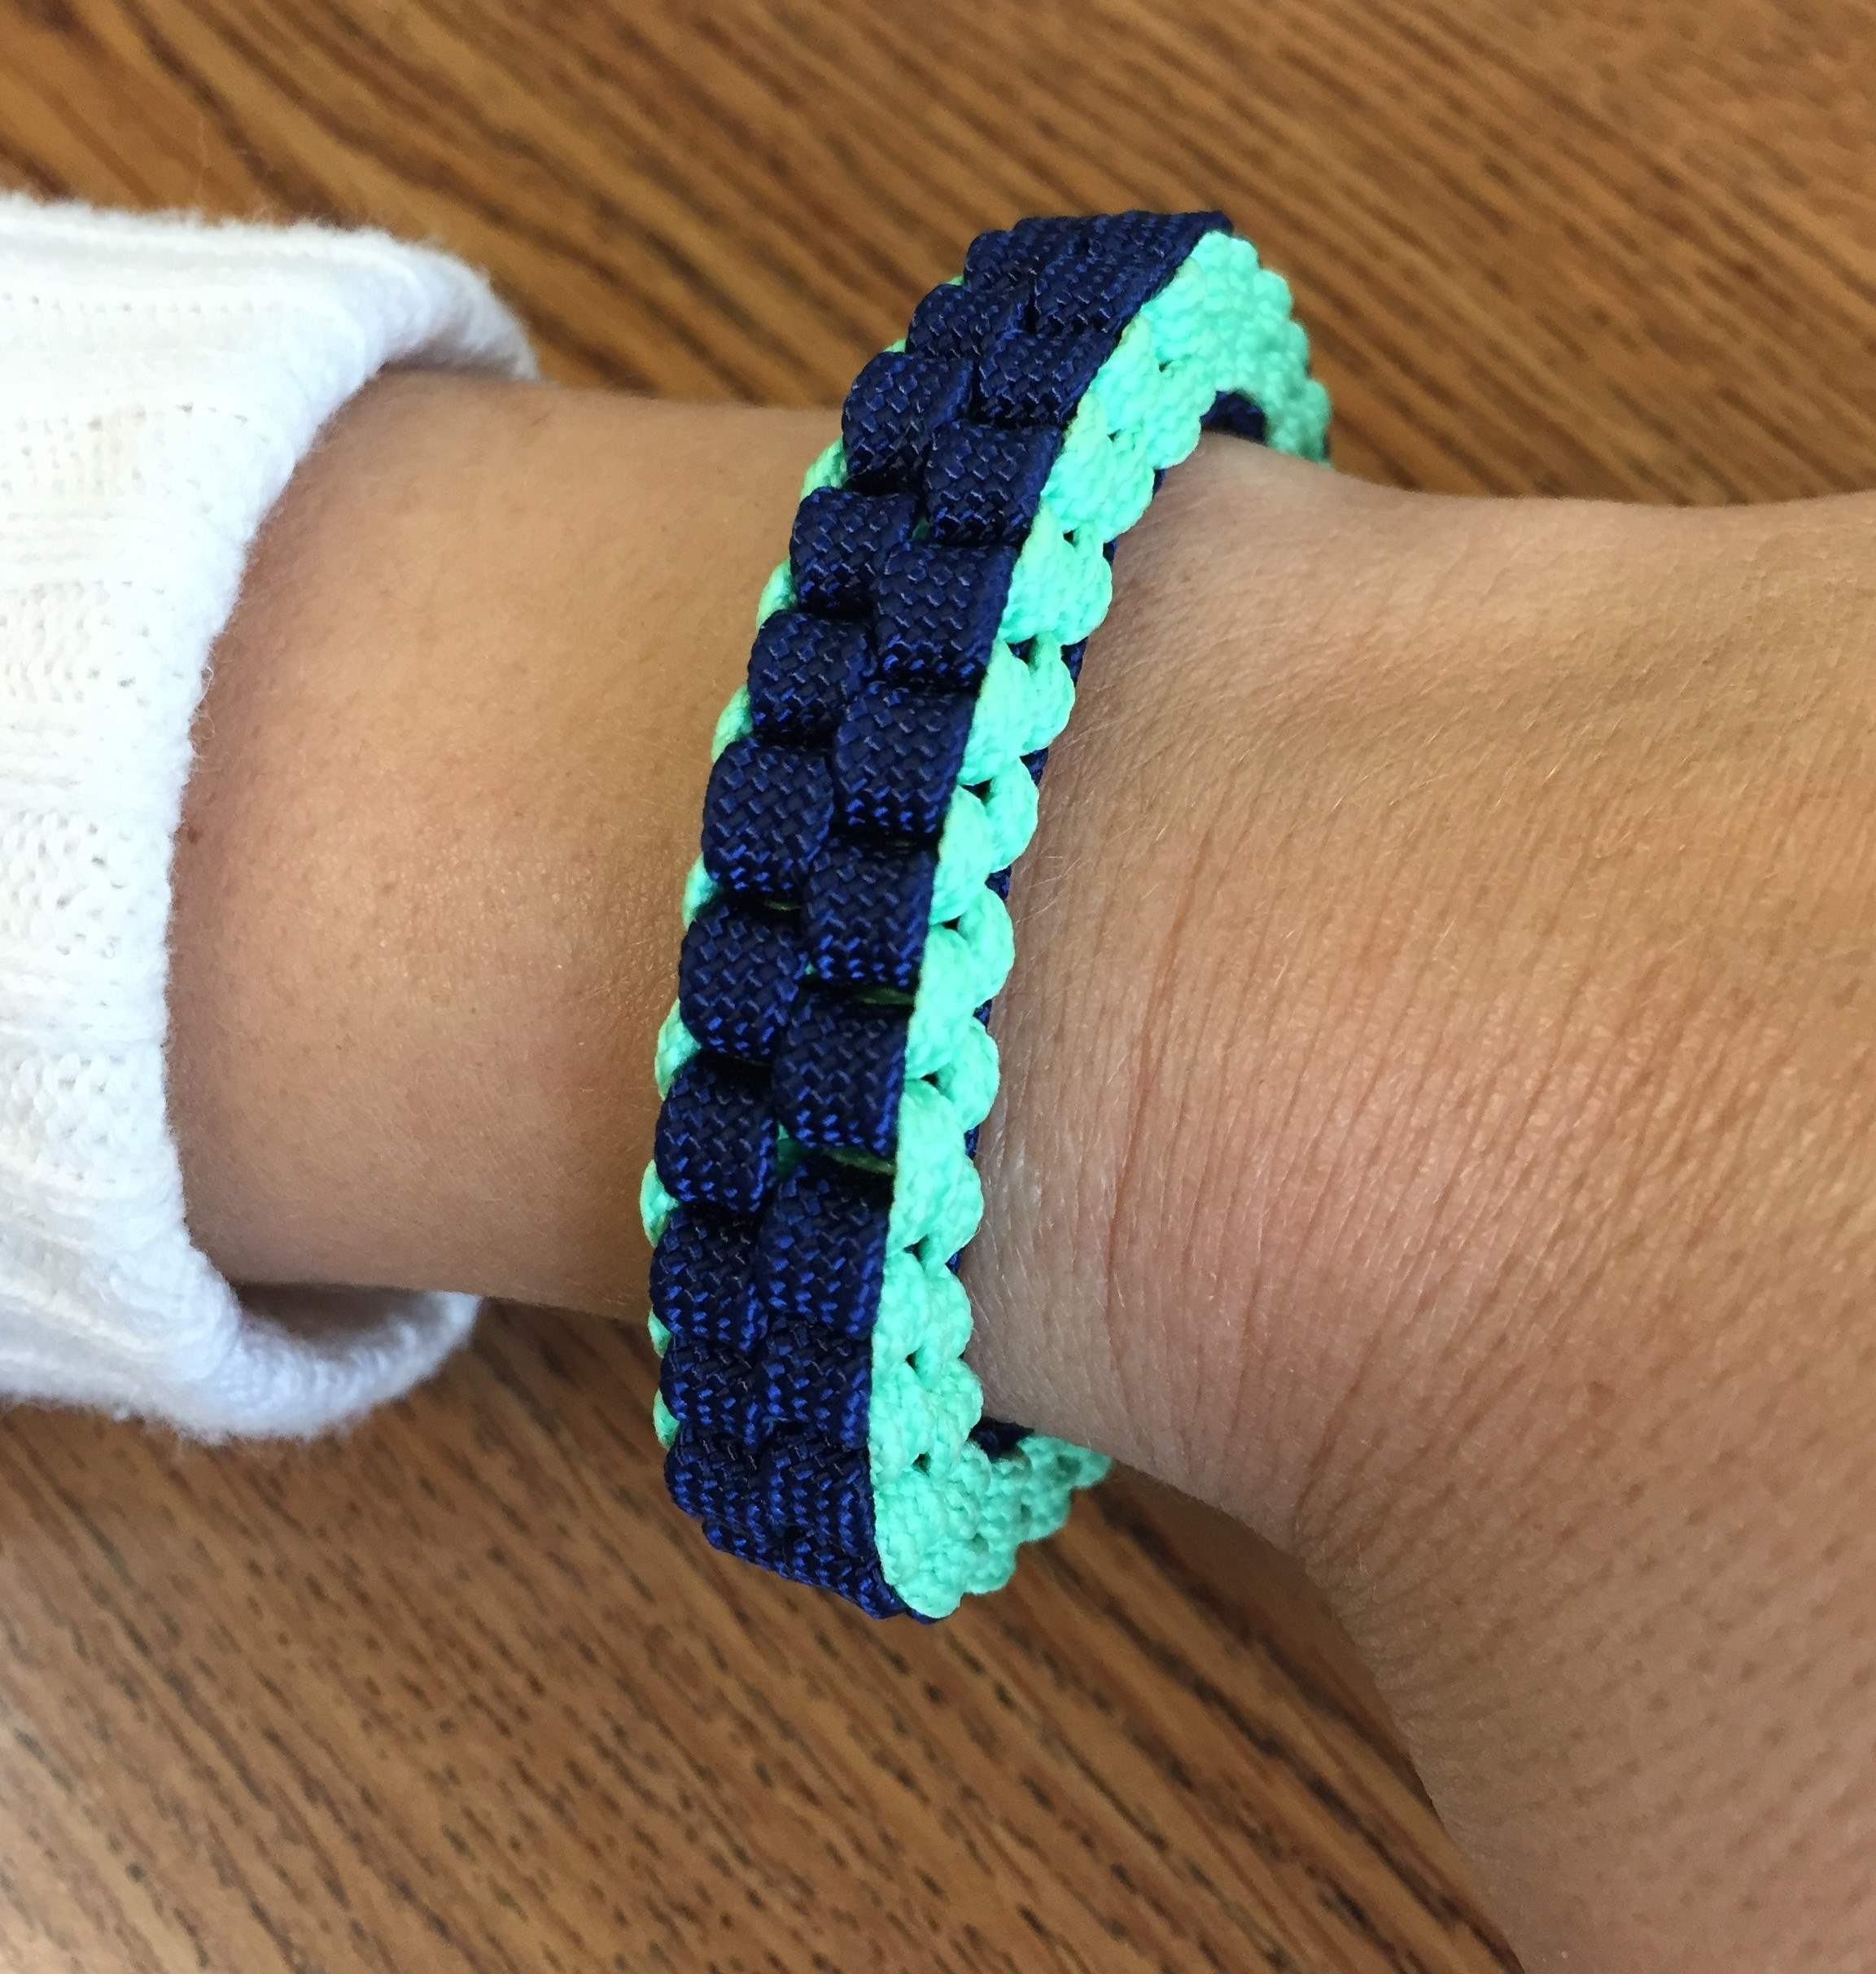 Square Braid Paracord Bracelet